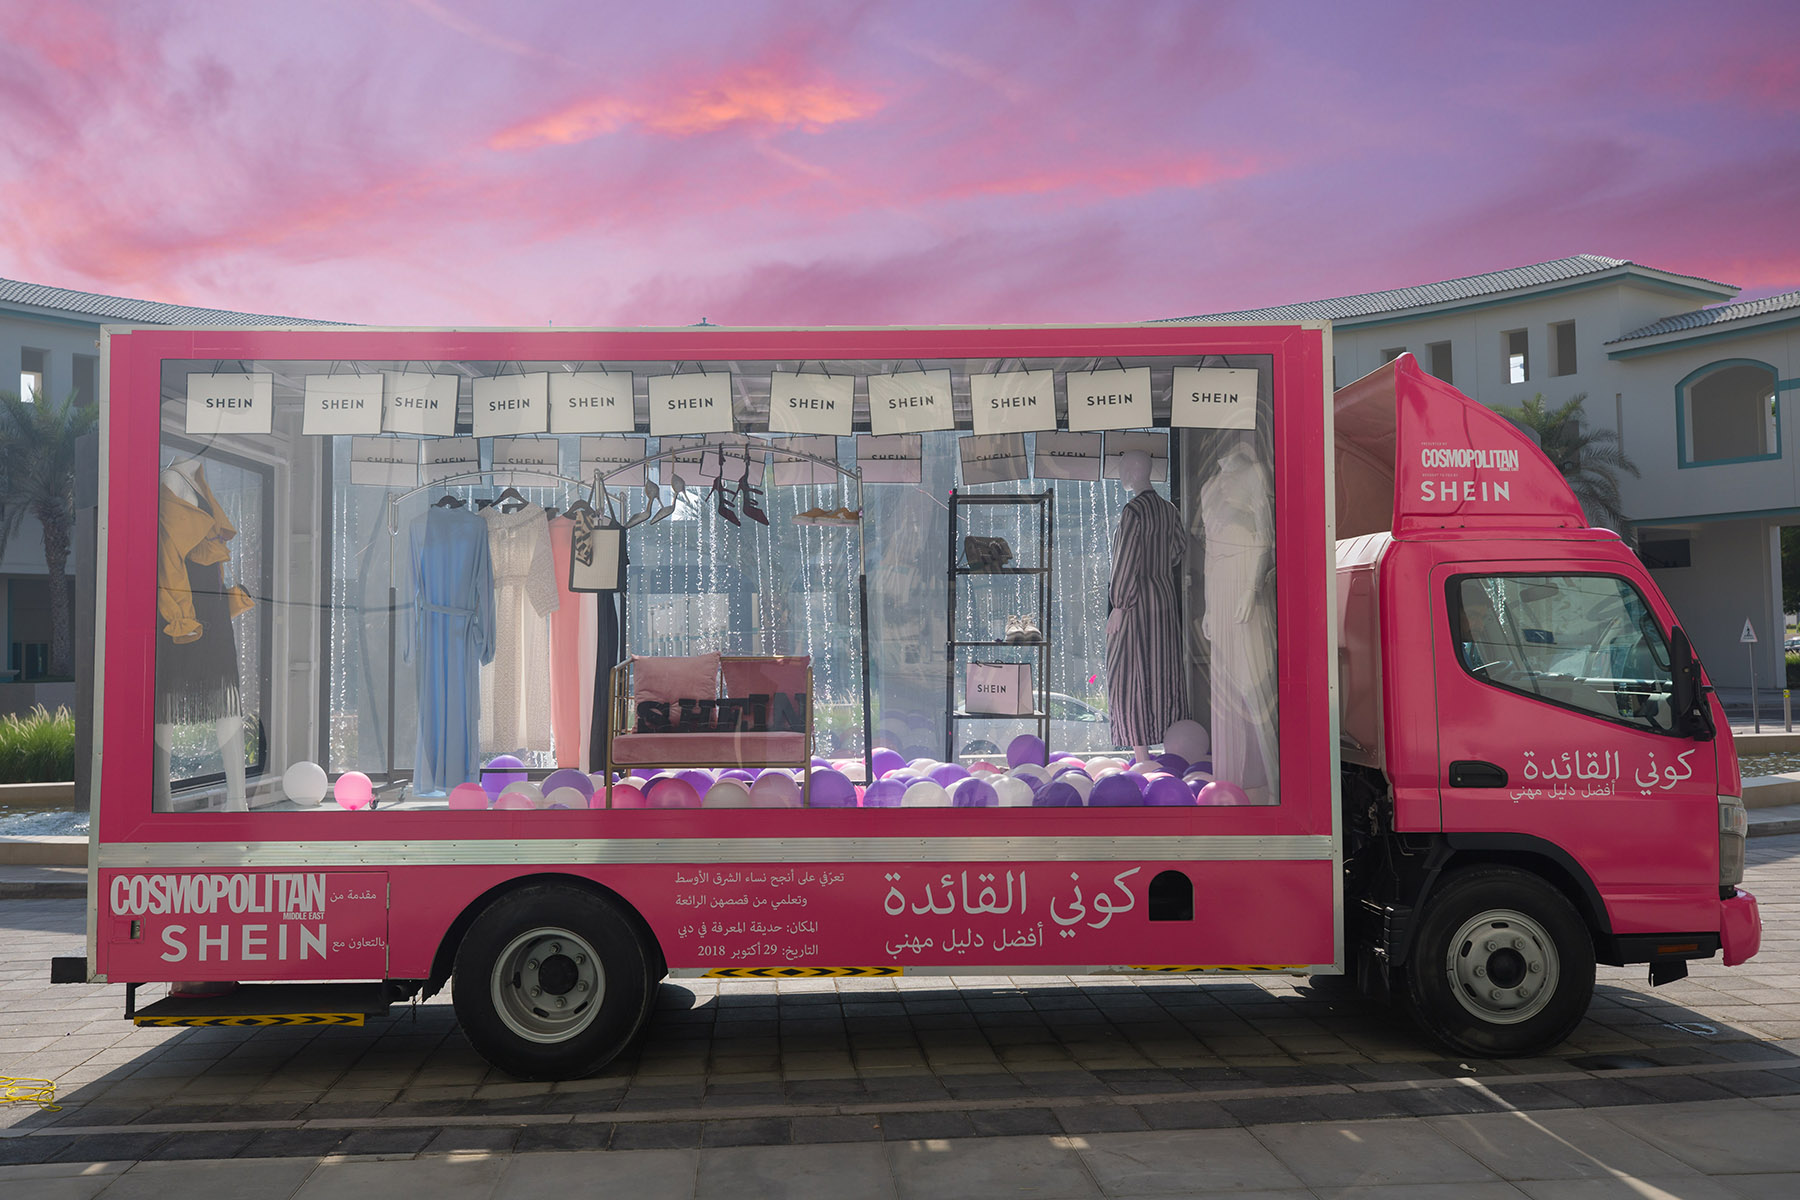 Cosmopolitan Shein truck at the event by Loesje Kessels Fashion Photographer Dubai